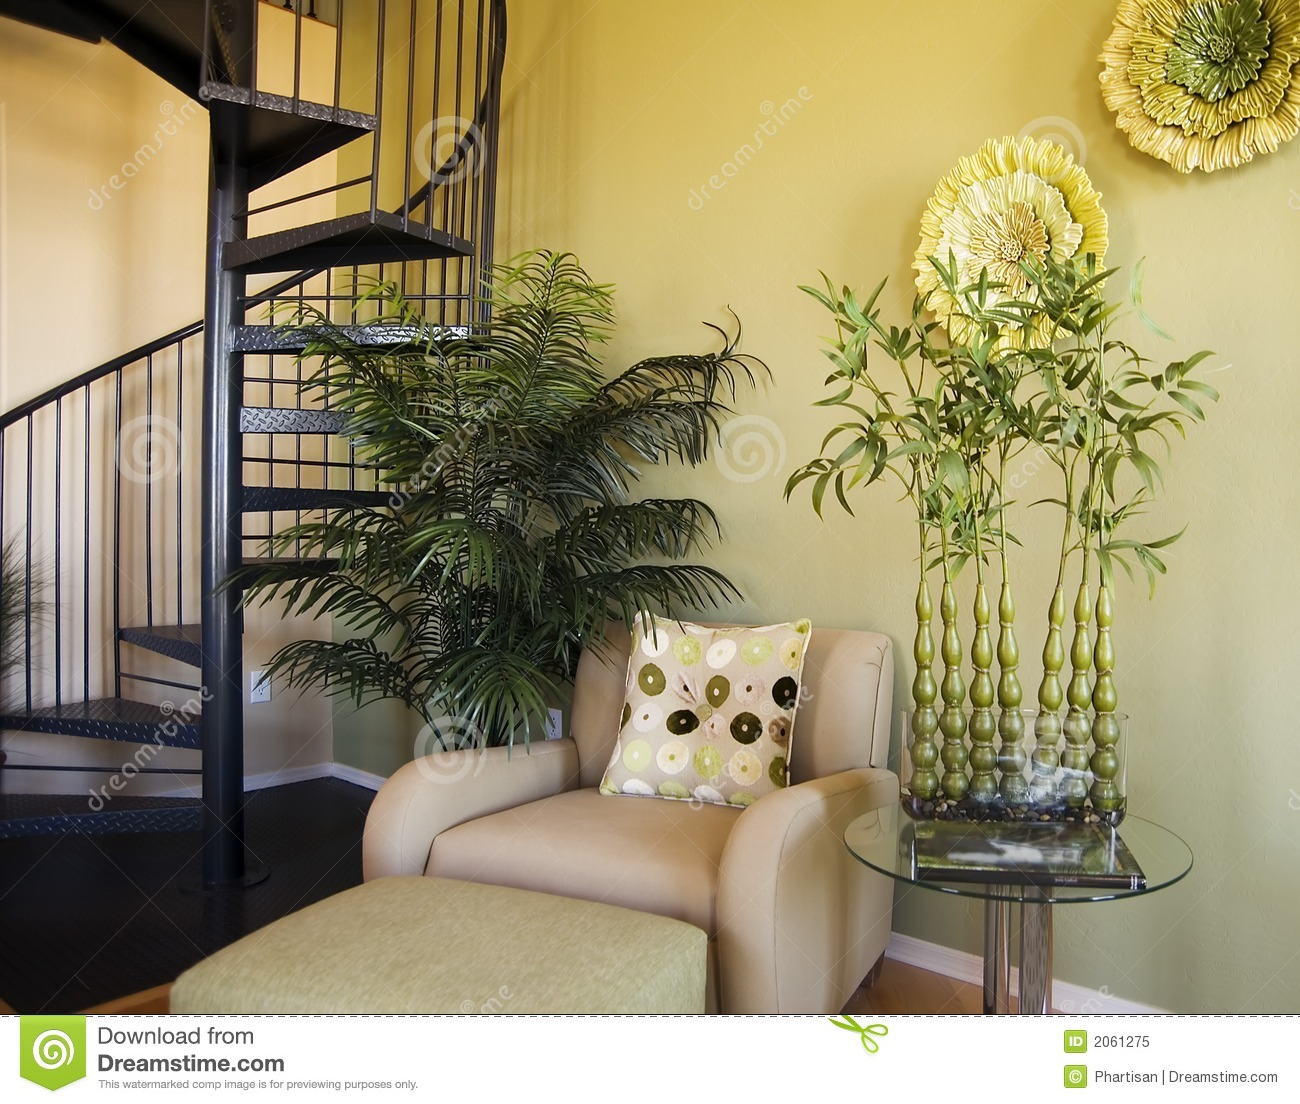 Model Home Interior Decorating: Model Home Interior Design Royalty Free Stock Photo